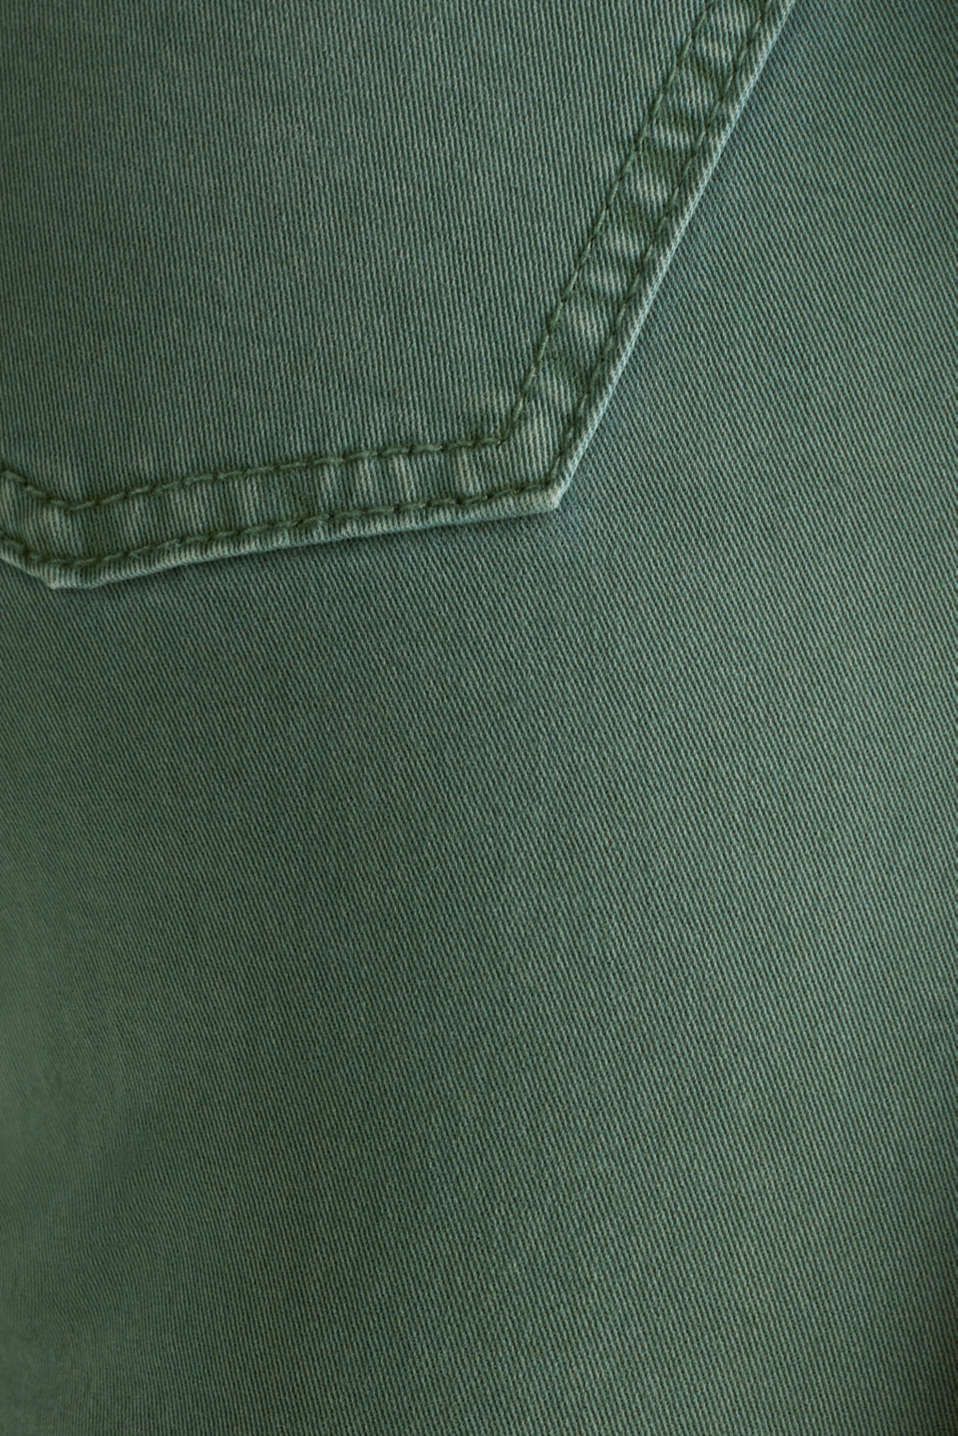 Washed-effect stretch trousers, KHAKI GREEN, detail image number 4